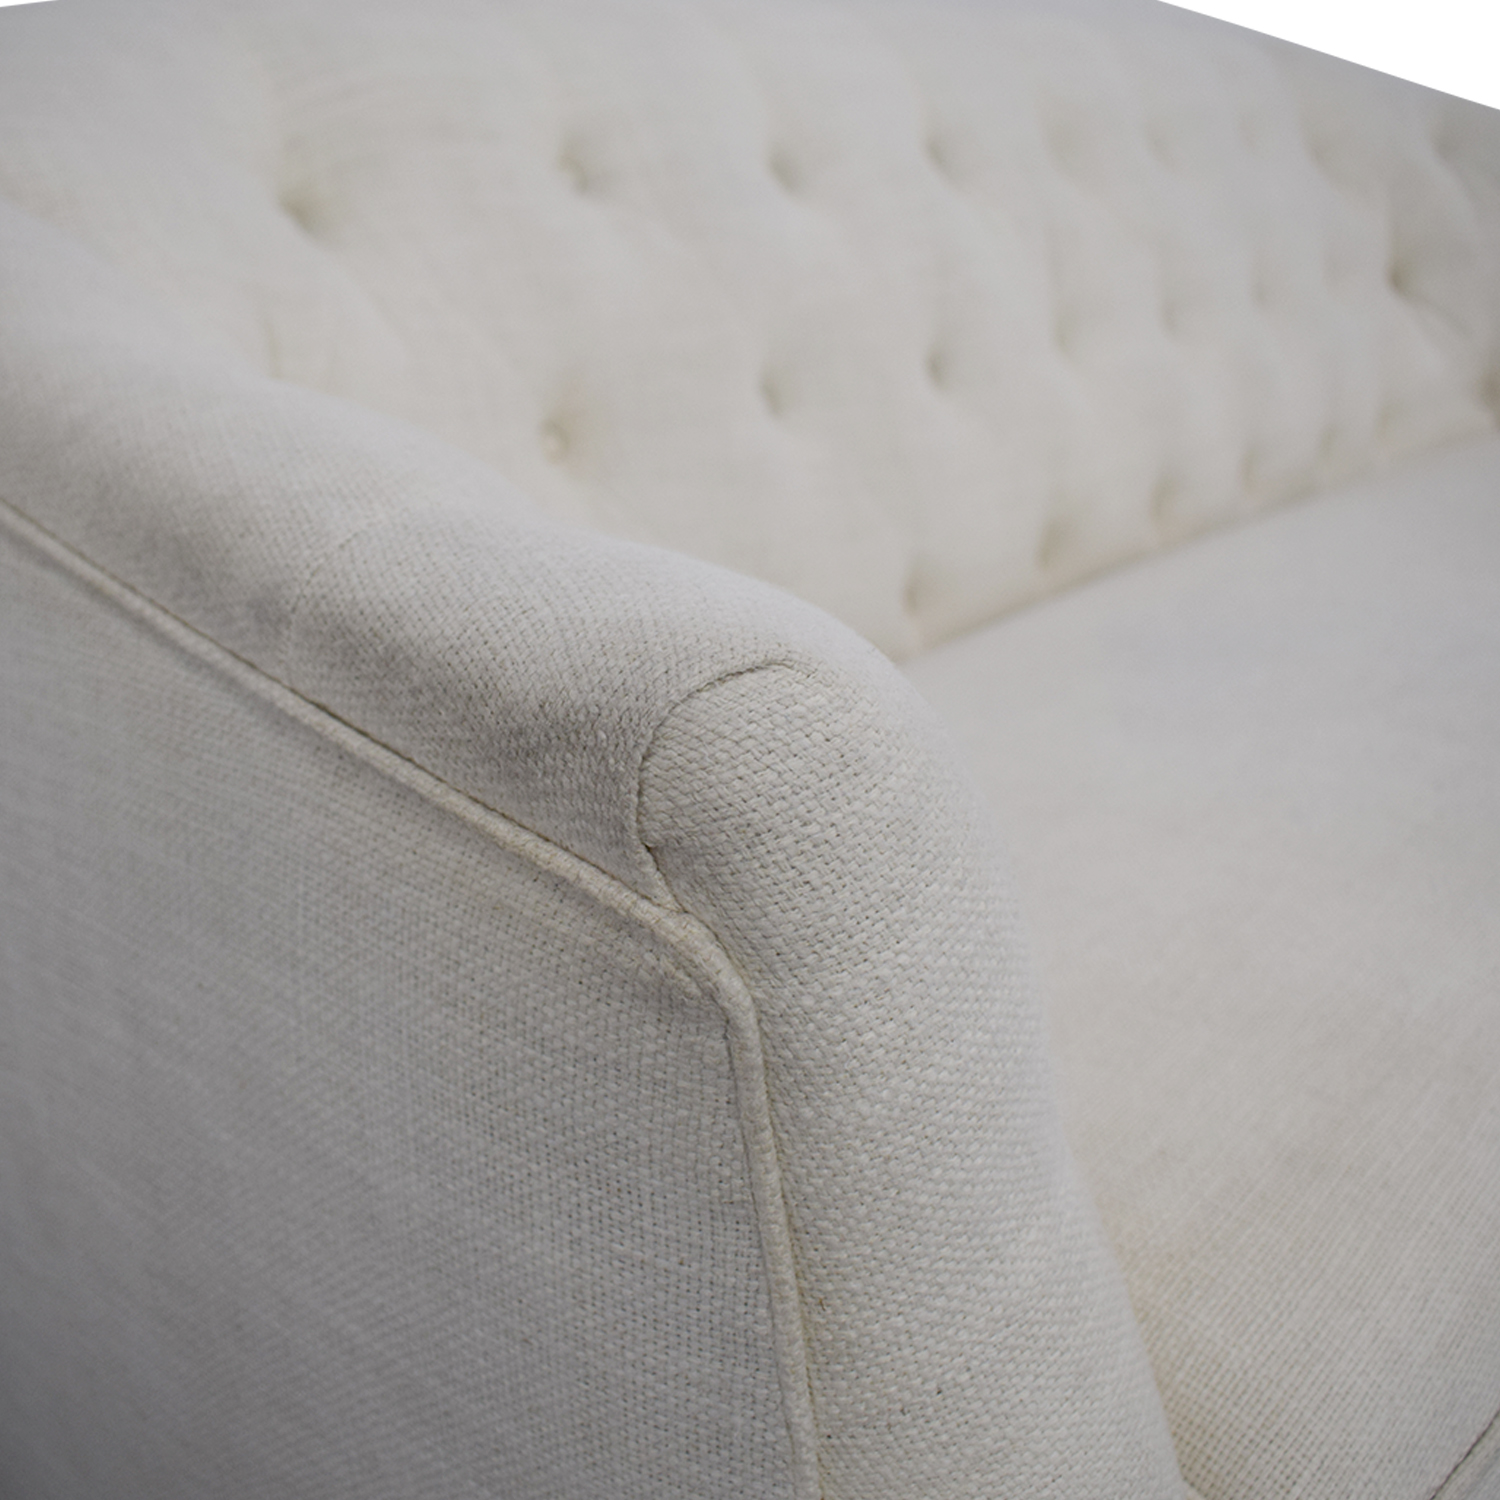 Z Gallerie Z Gallerie Tufted Curved Tuxedo Sofa nyc